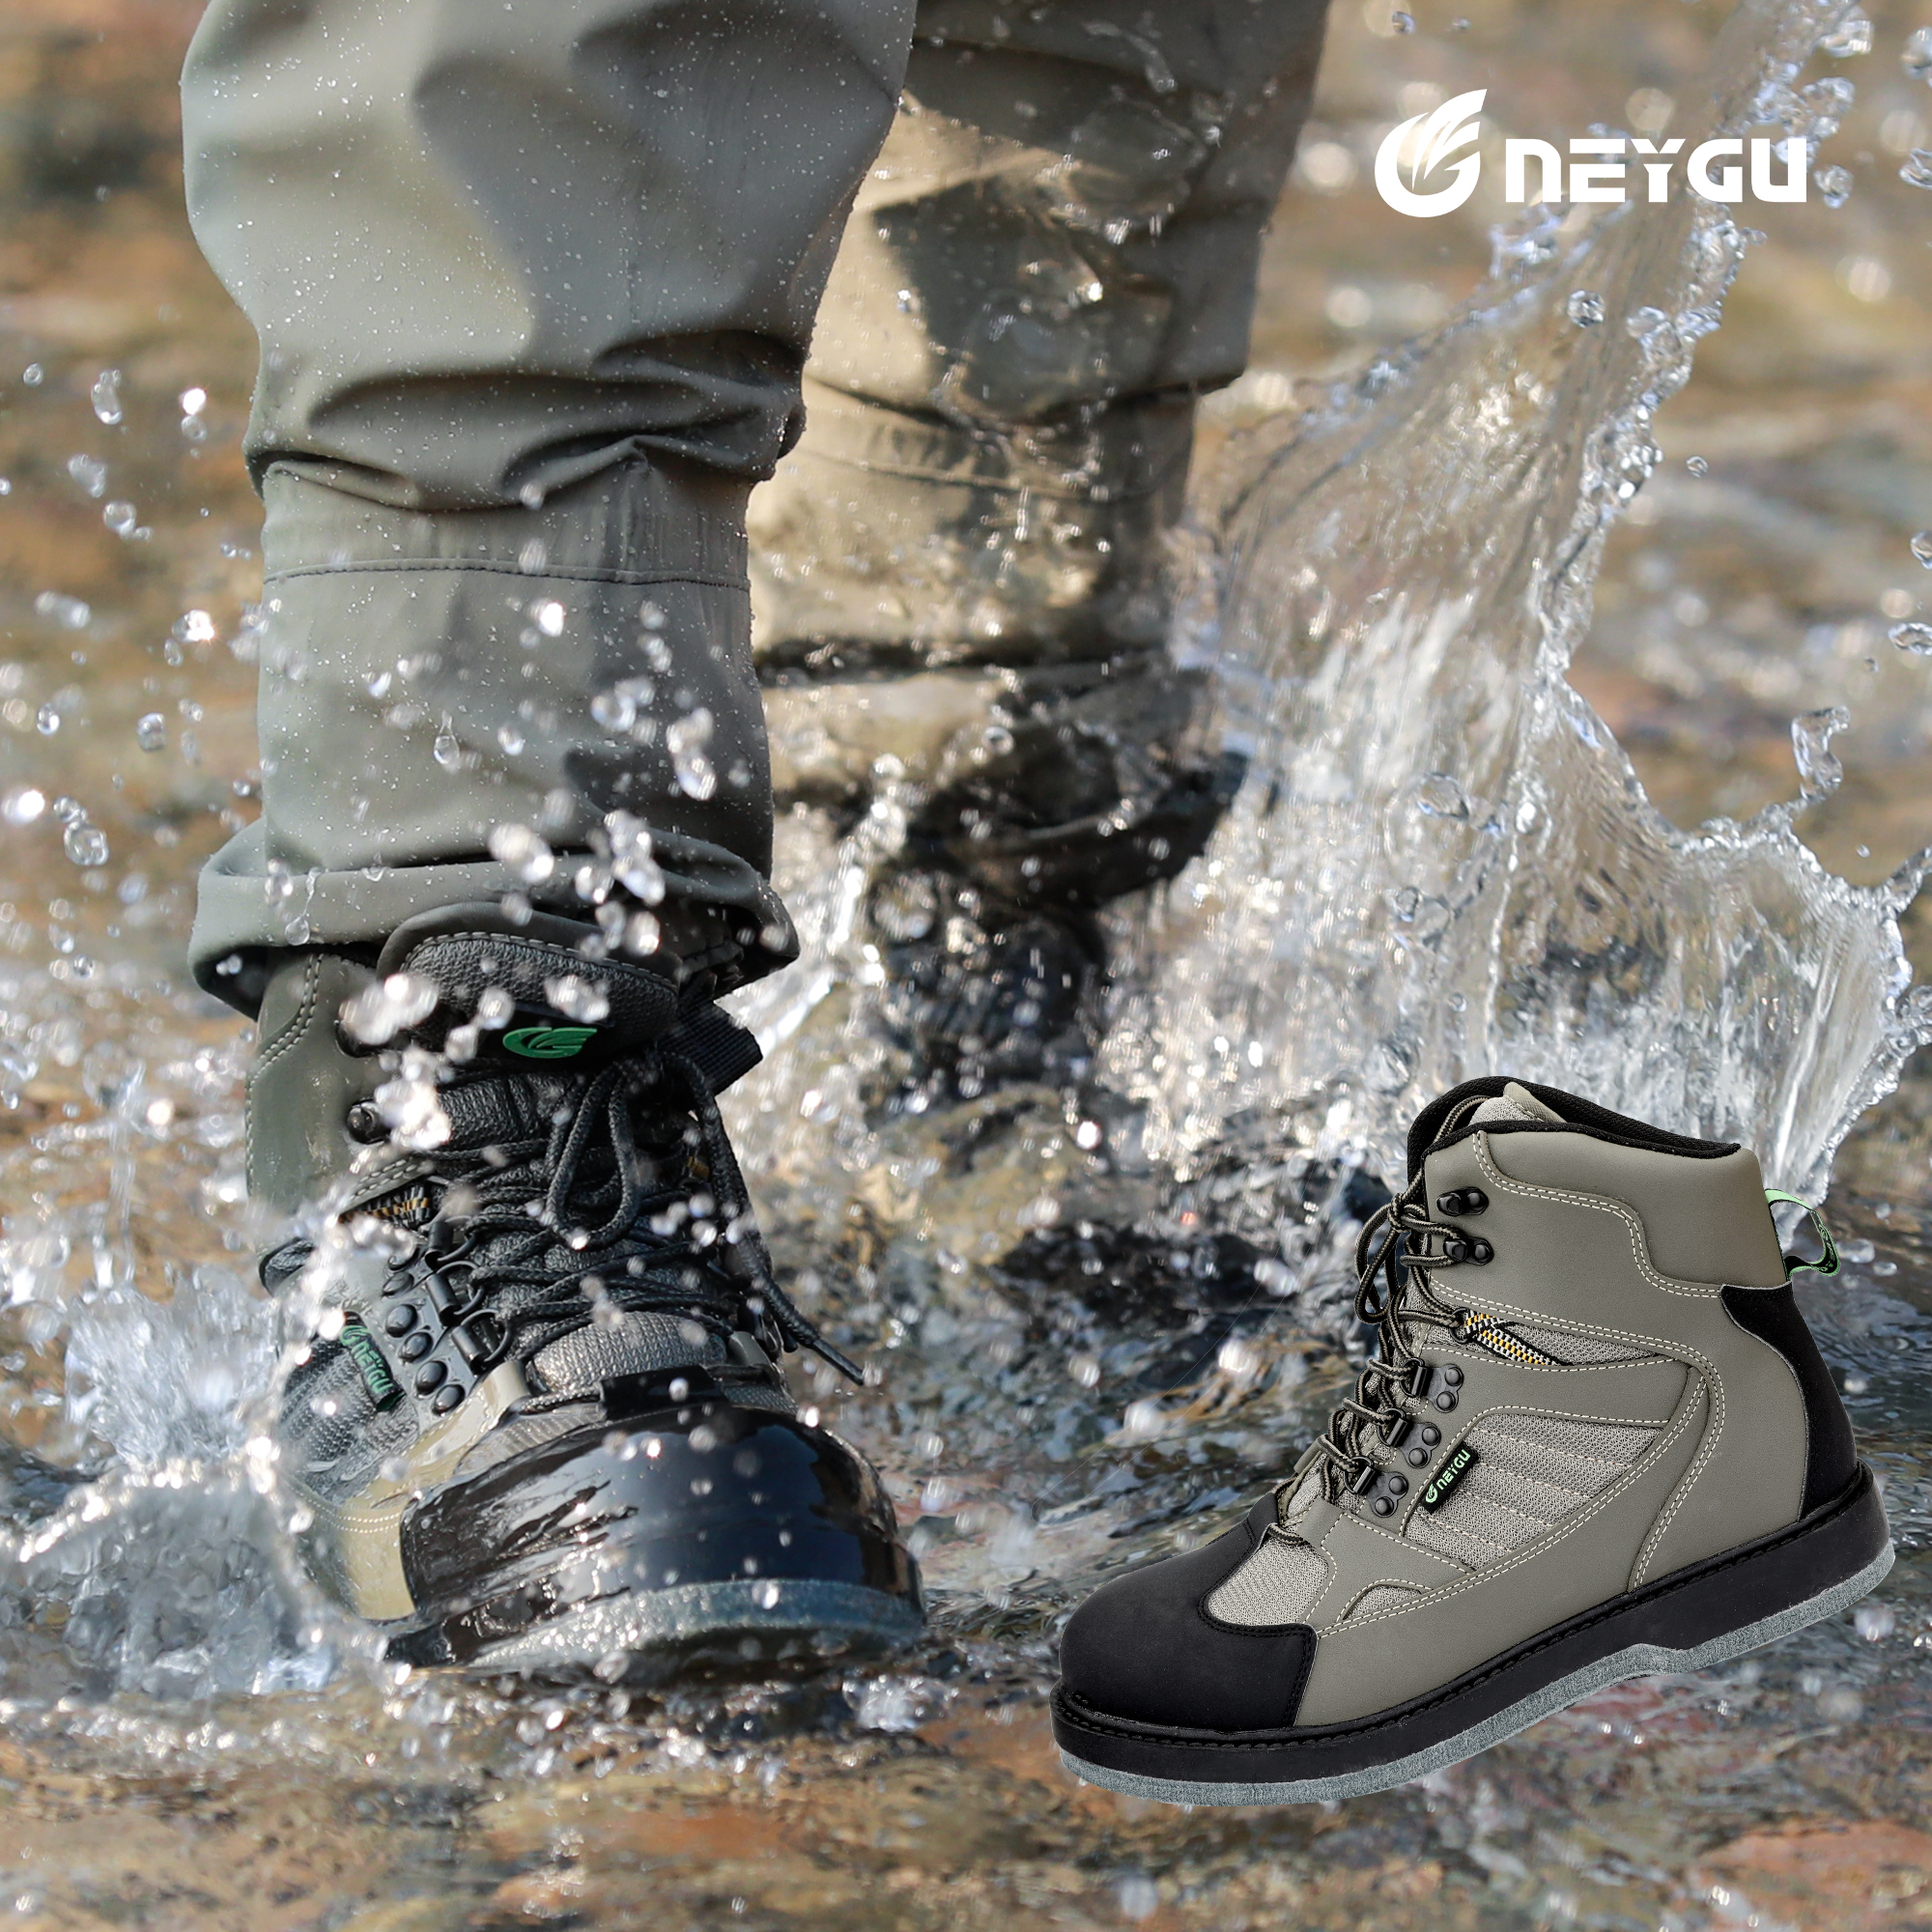 NeyGu Wading Boots For Rafting, Fishing; The Wader Boots Have Felt Sole, Rubber Sole Options ; Camo Wading Shoes Fit For Hunting